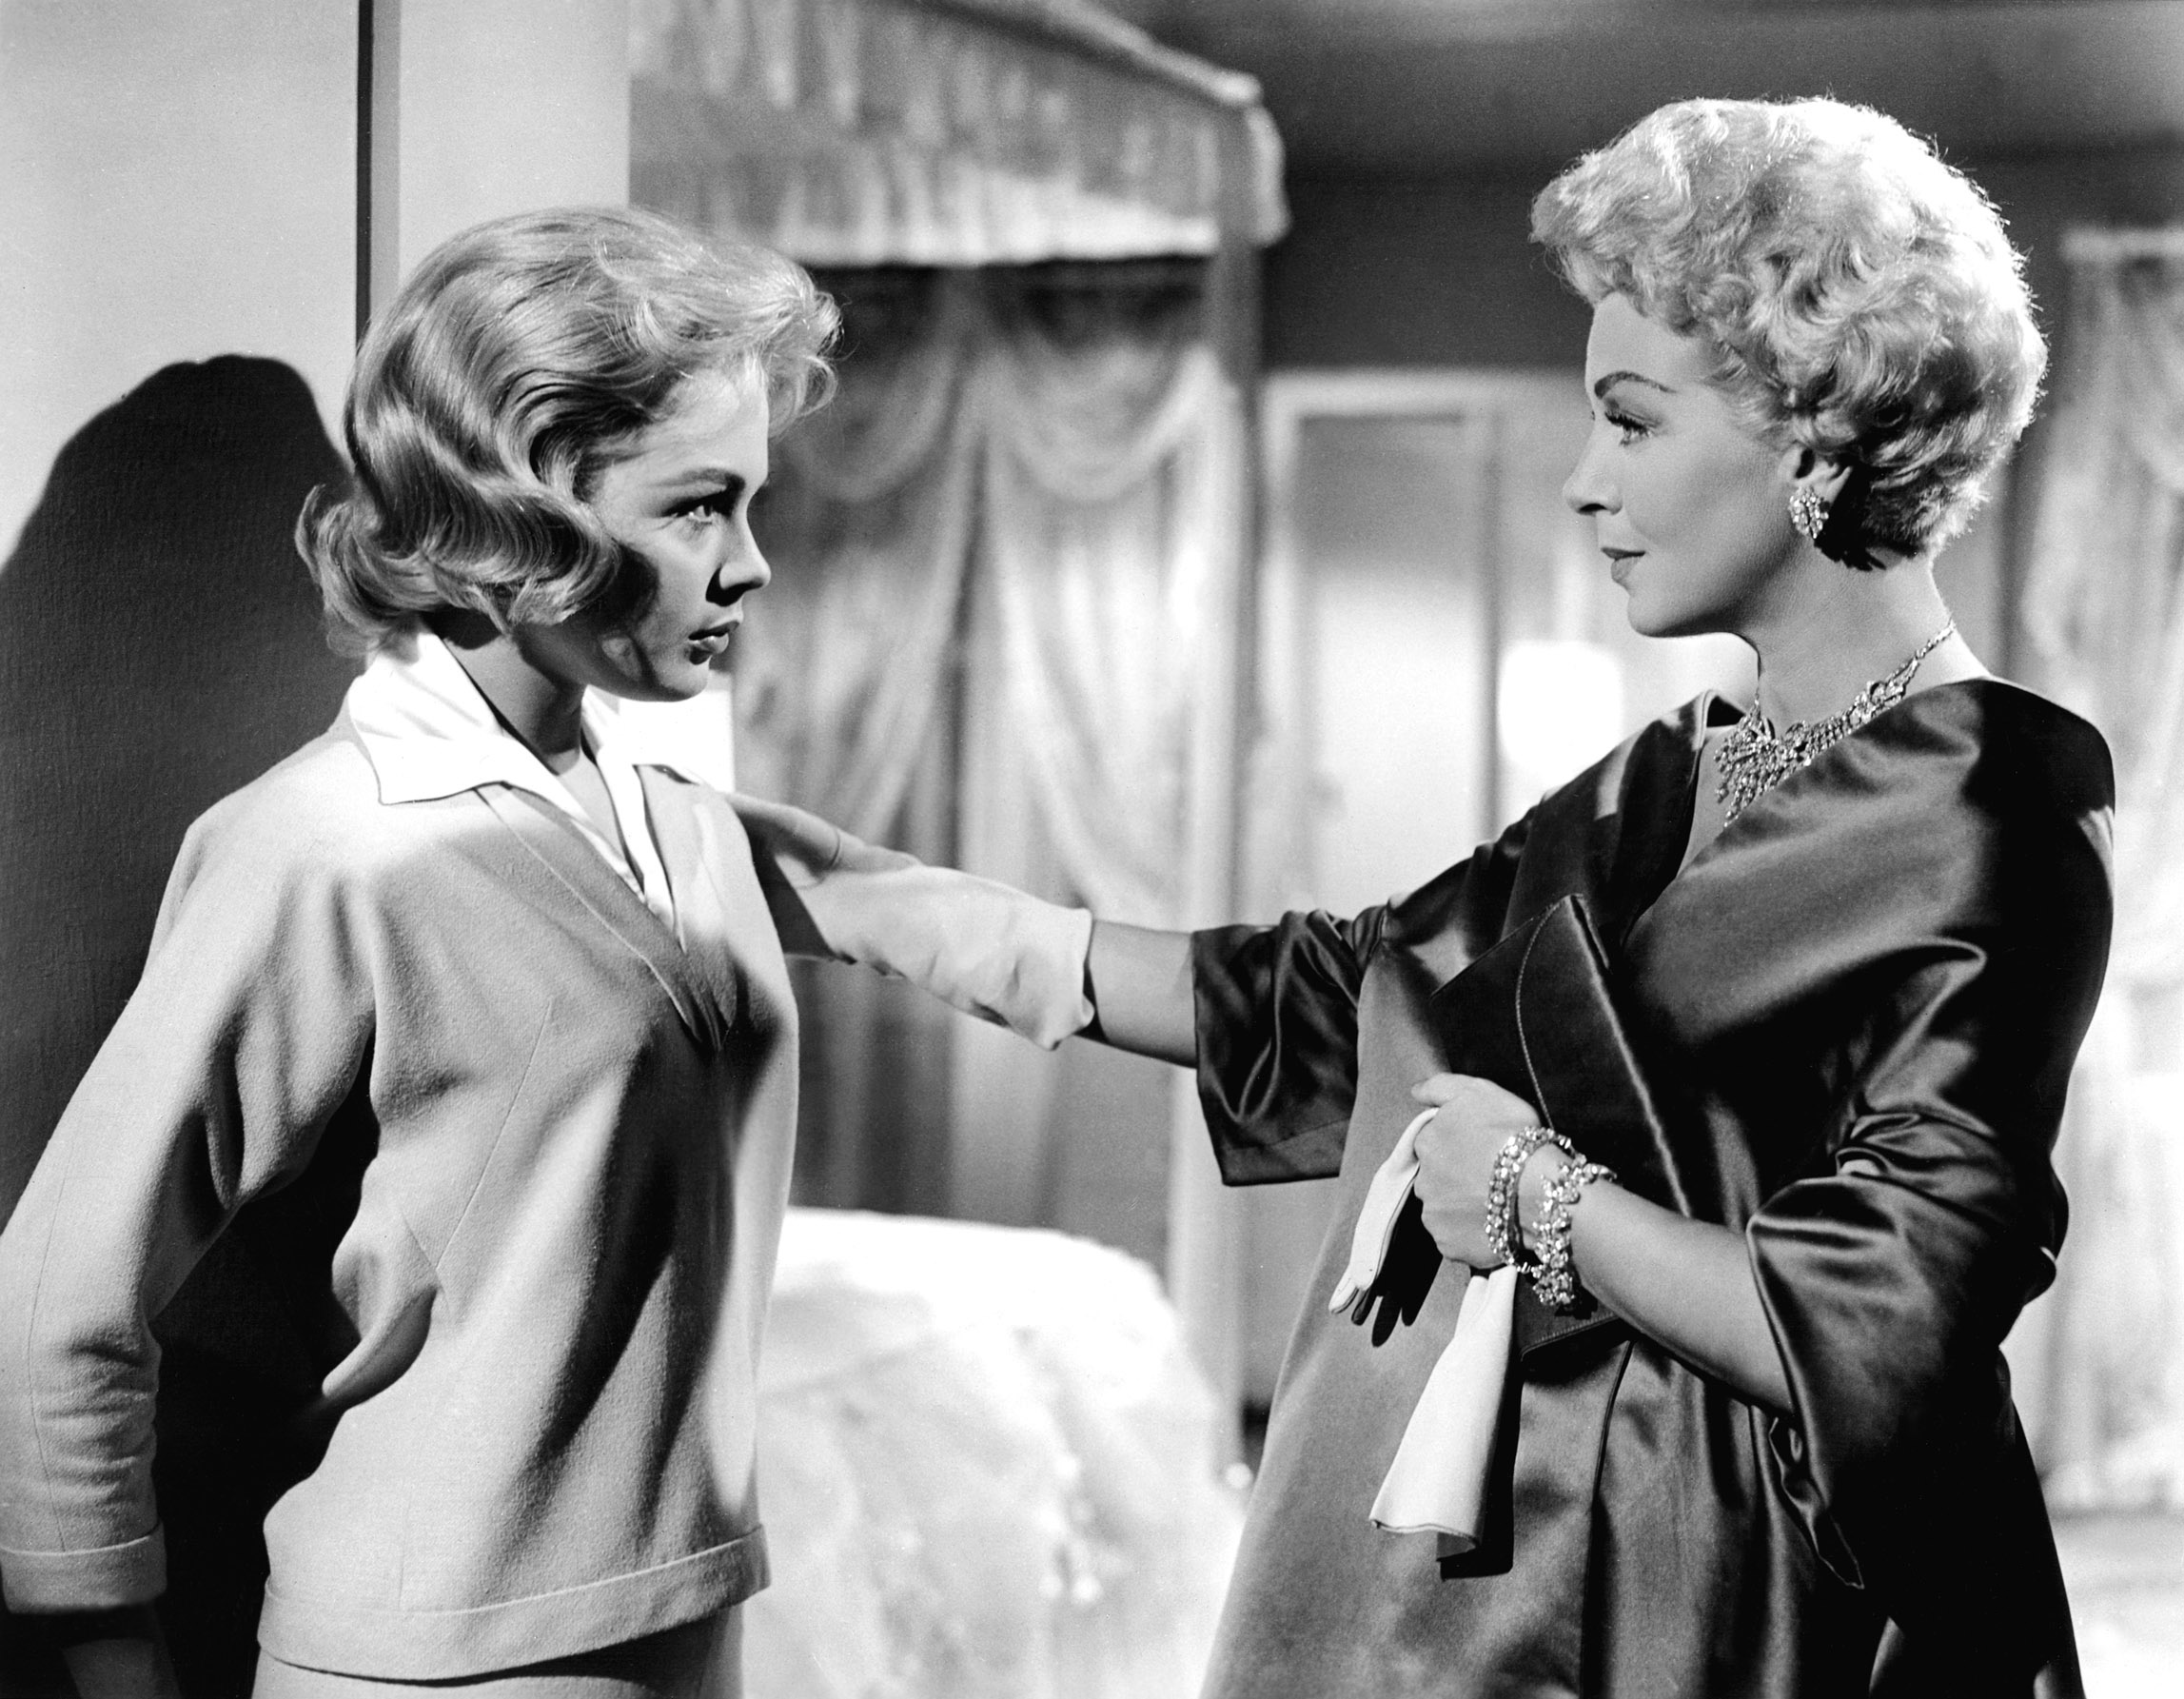 the imitation of life Imitation of life has 240 ratings and 39 reviews graceann said: if you haven't  seen either the 1934 or 1959 versions of imitation of life, this review w.